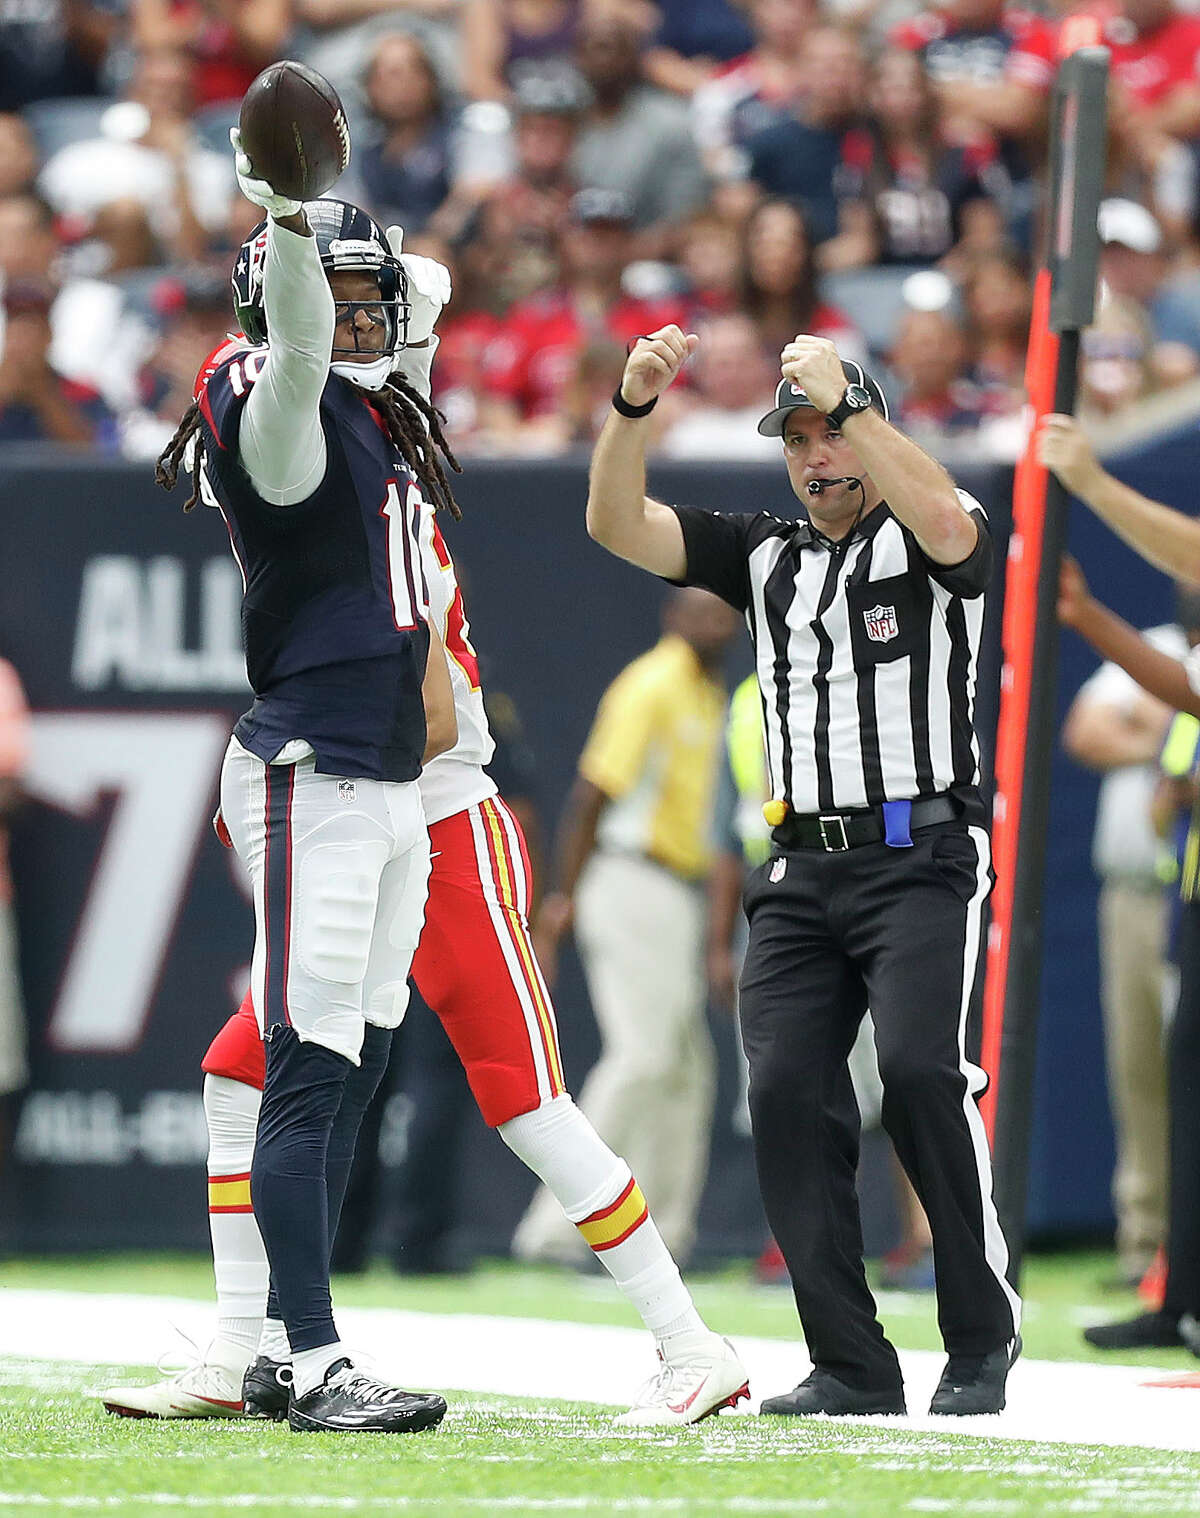 Houston Texans wide receiver DeAndre Hopkins (10) signals a first down during the second quarter of an NFL football game at NRG Stadium, Sunday, Sept. 18, 2016 in Houston.